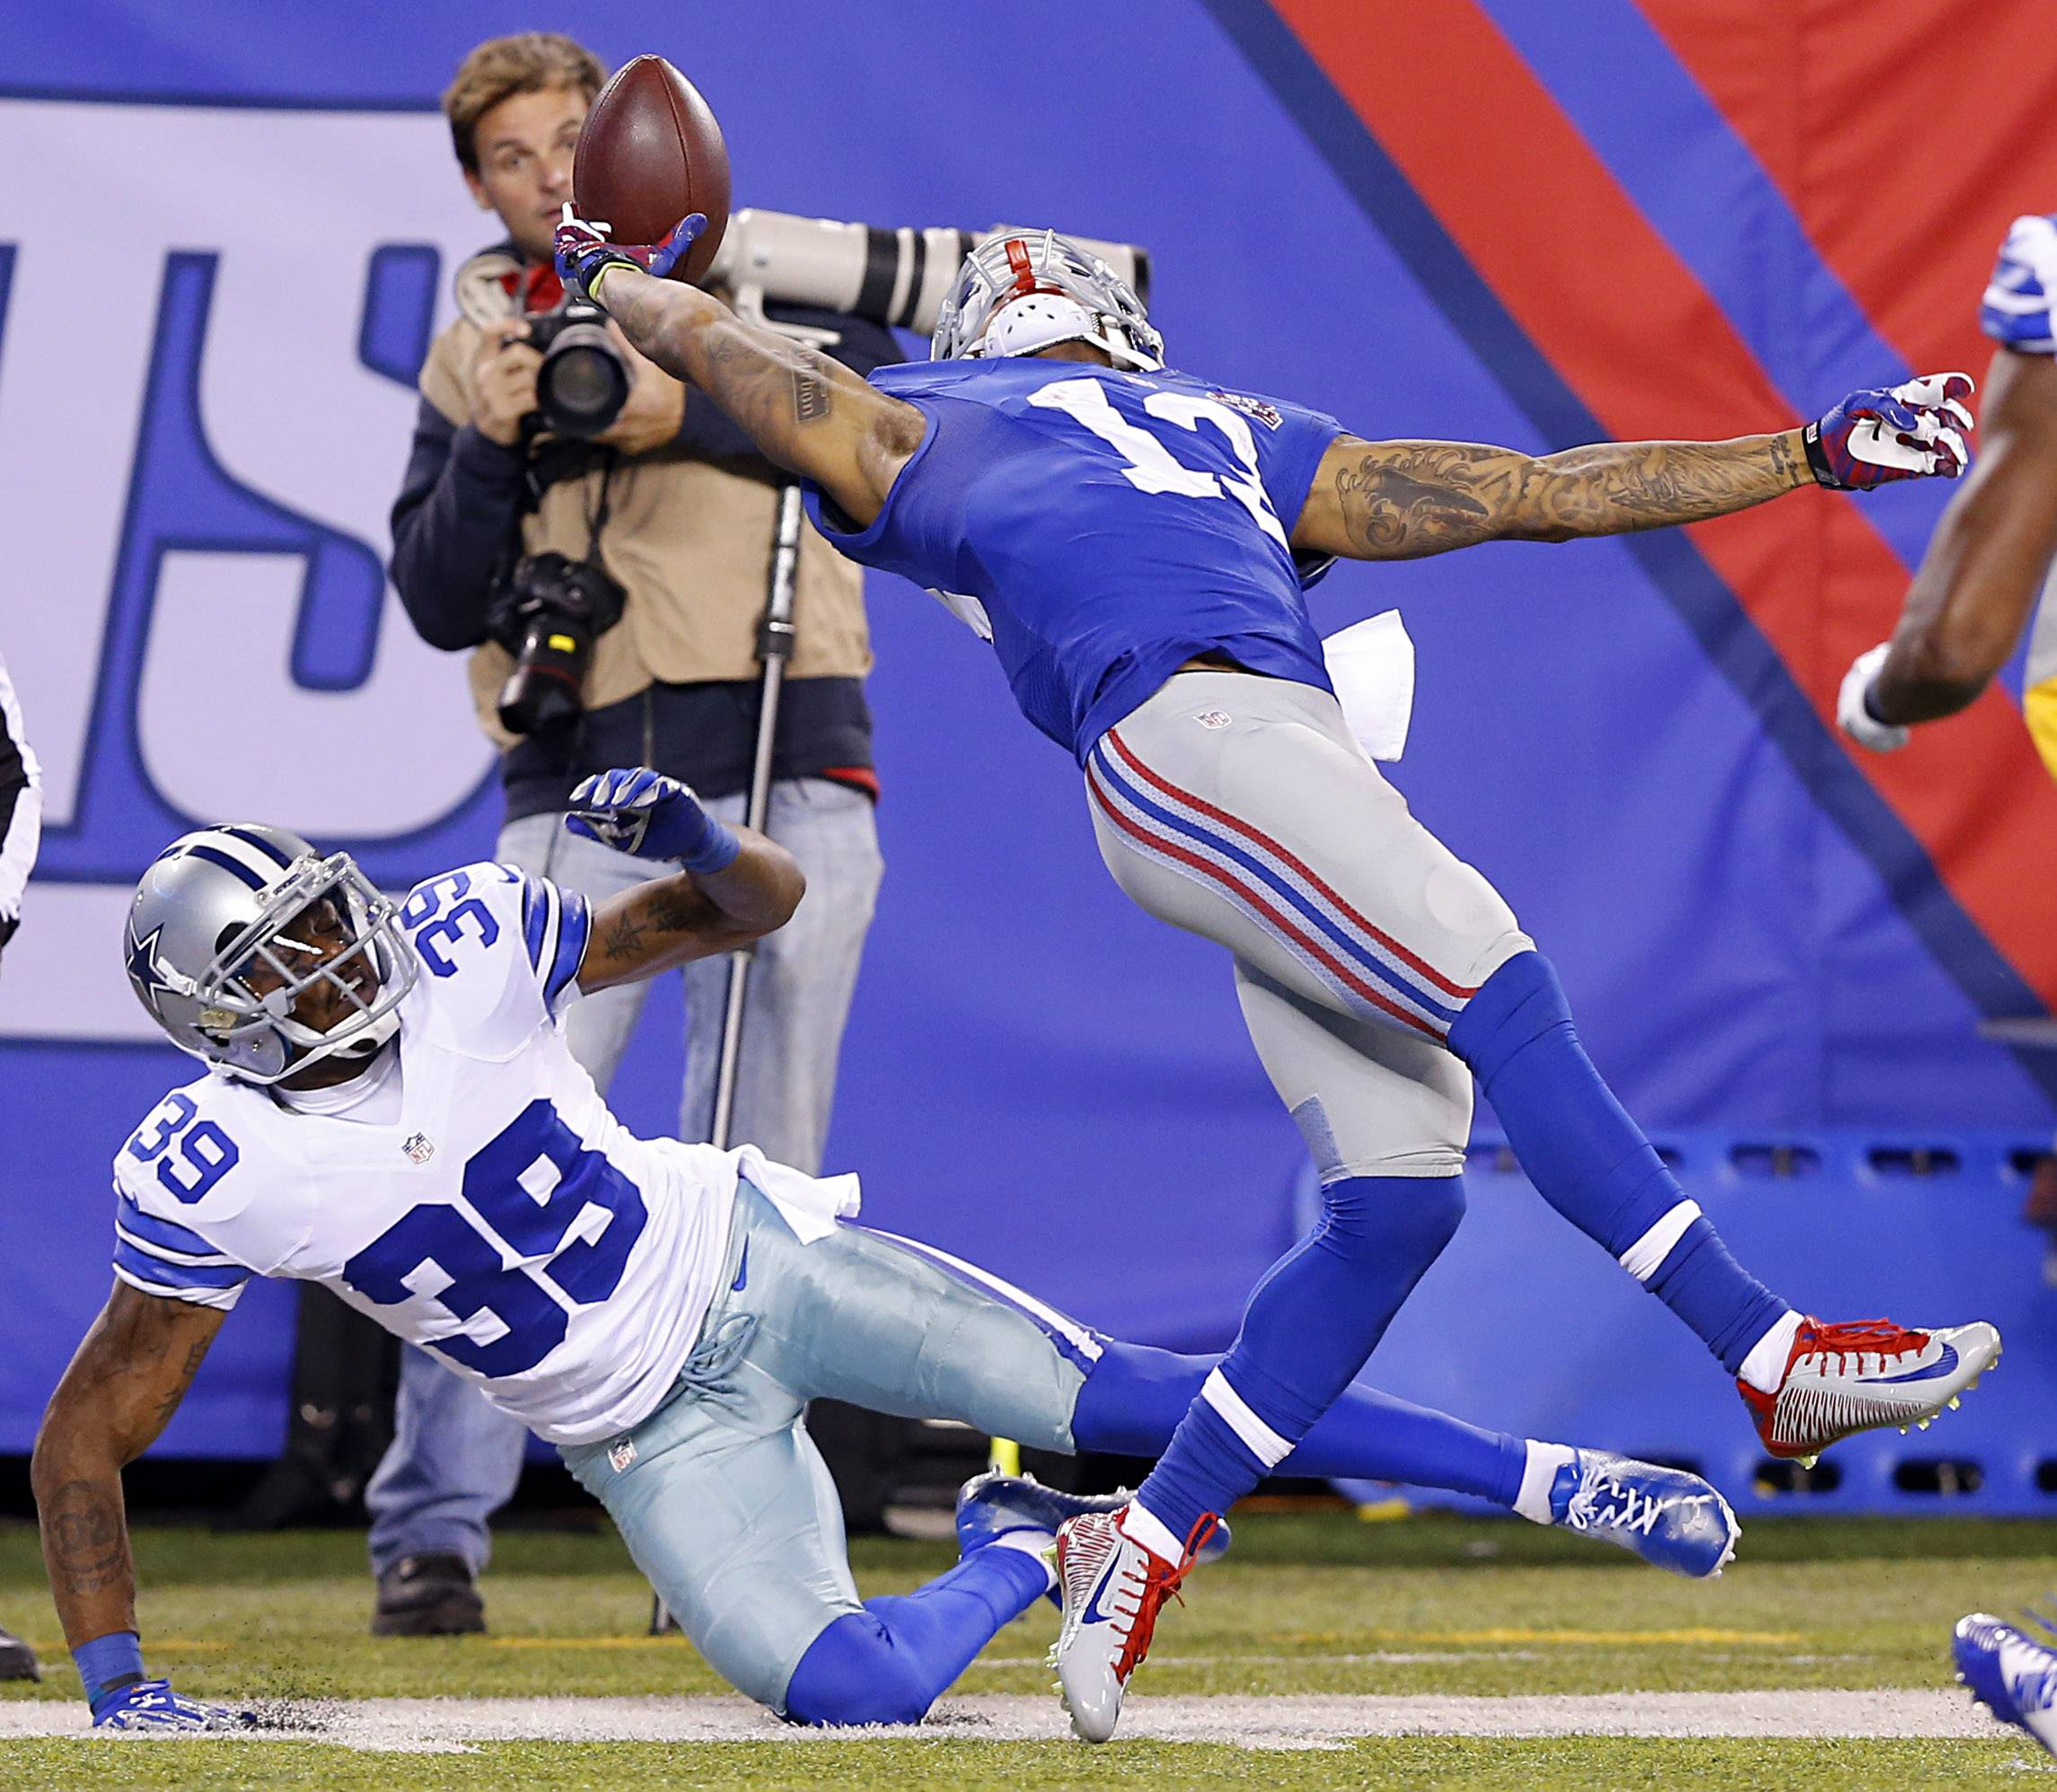 Cowboys Blog - After Breakthrough Season, Cowboys Look For More In 2015; Tickets Sky-High At Jerry World